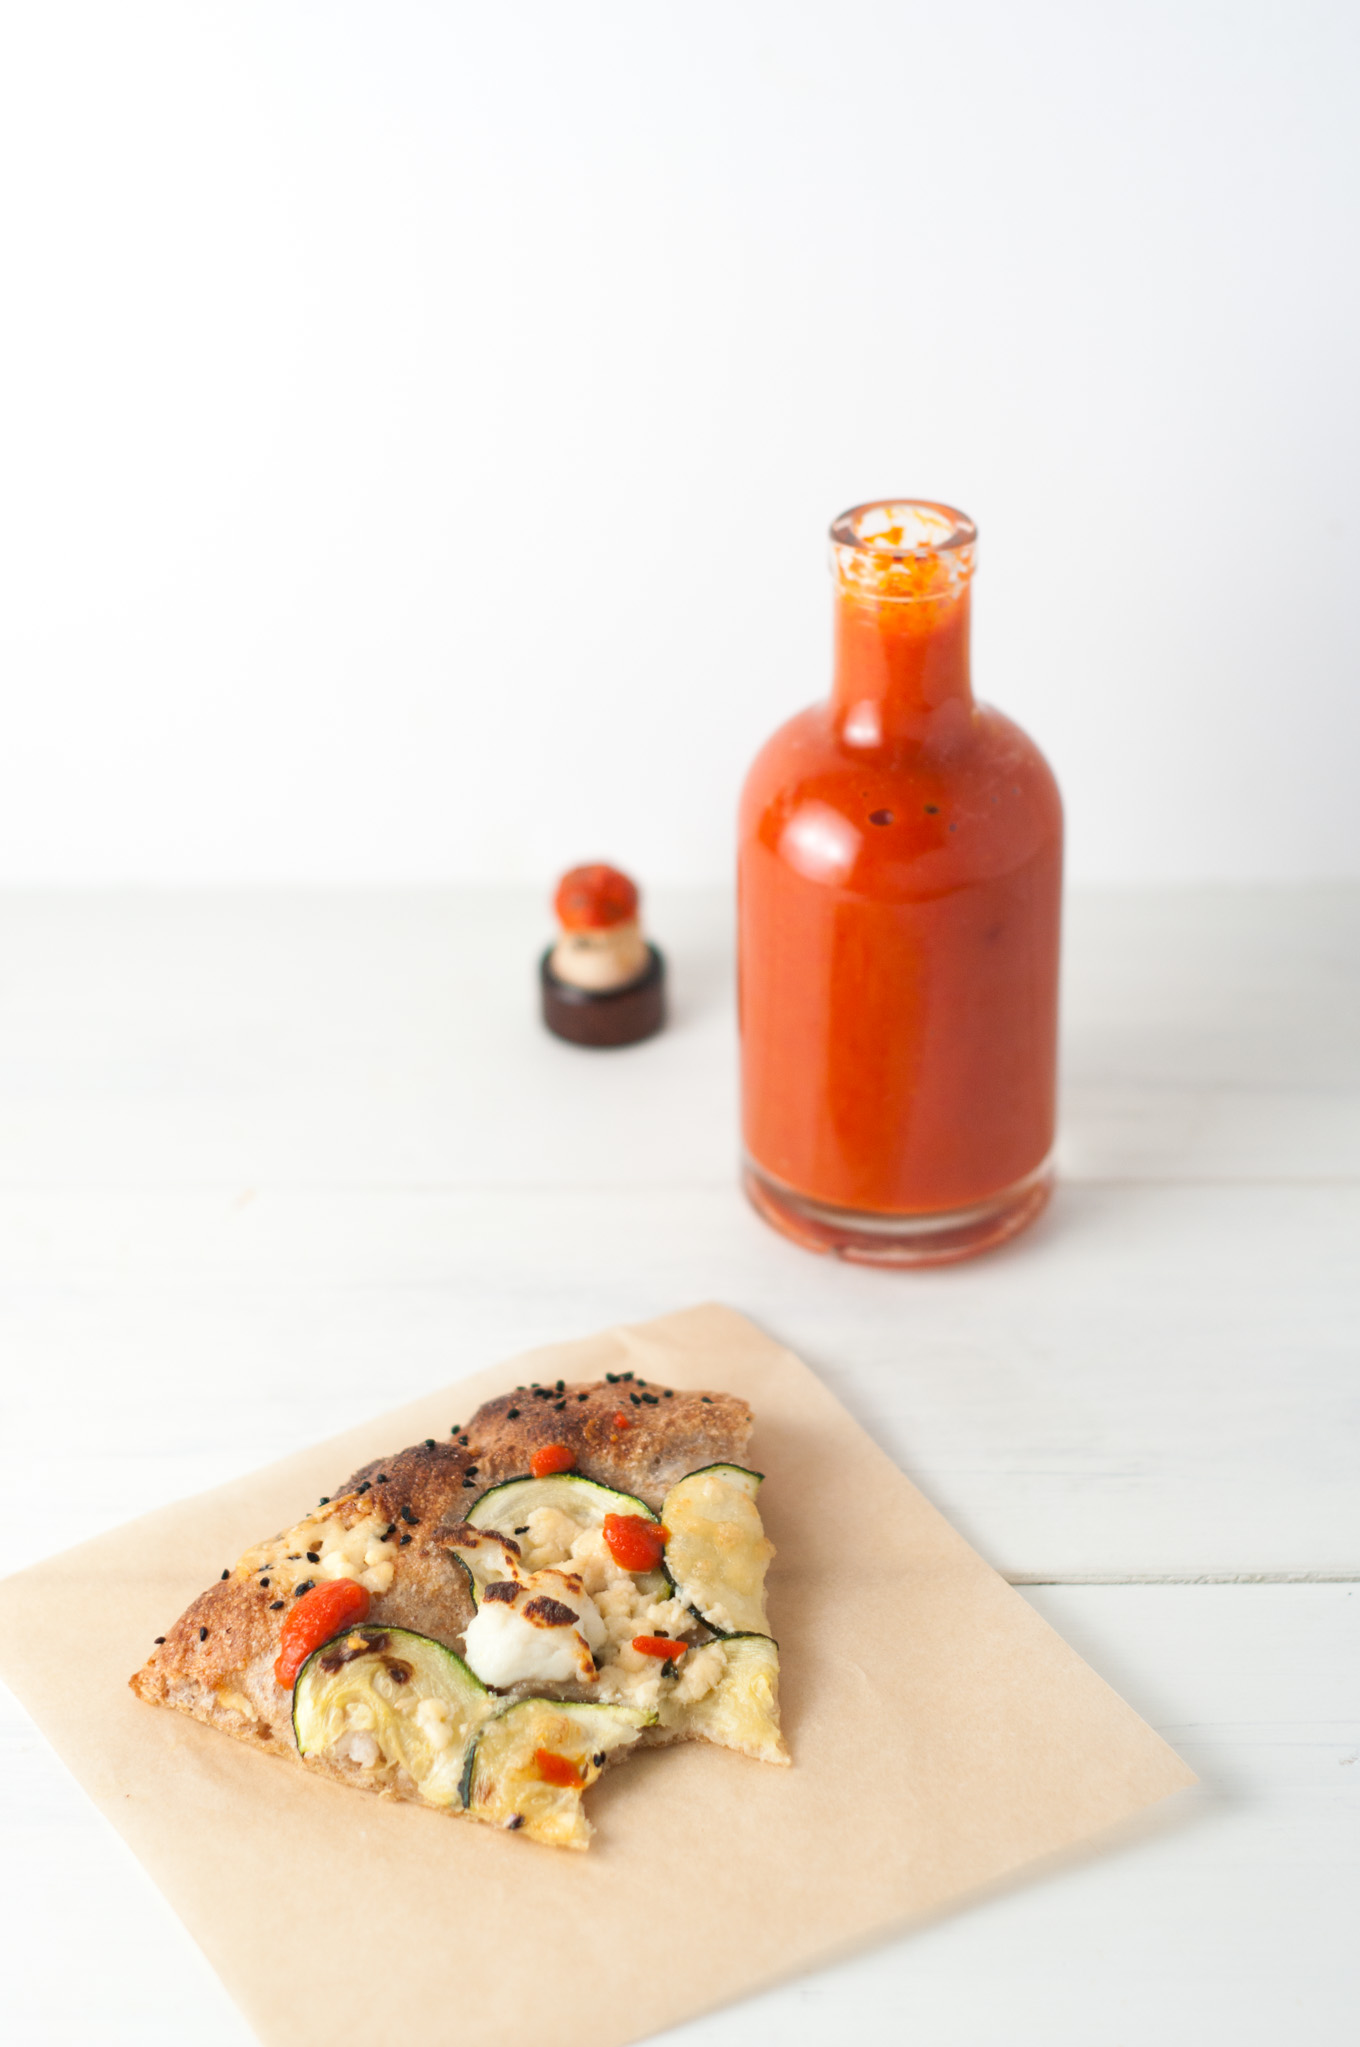 Homemade Chilli Sauce - This homemade sriracha recipe blends plenty of hot red chillies and garlic with a touch of sugar, salt and vinegar for a sweet, tart, spicy taste sensation! By @deliciouscratch   familycuisine.net